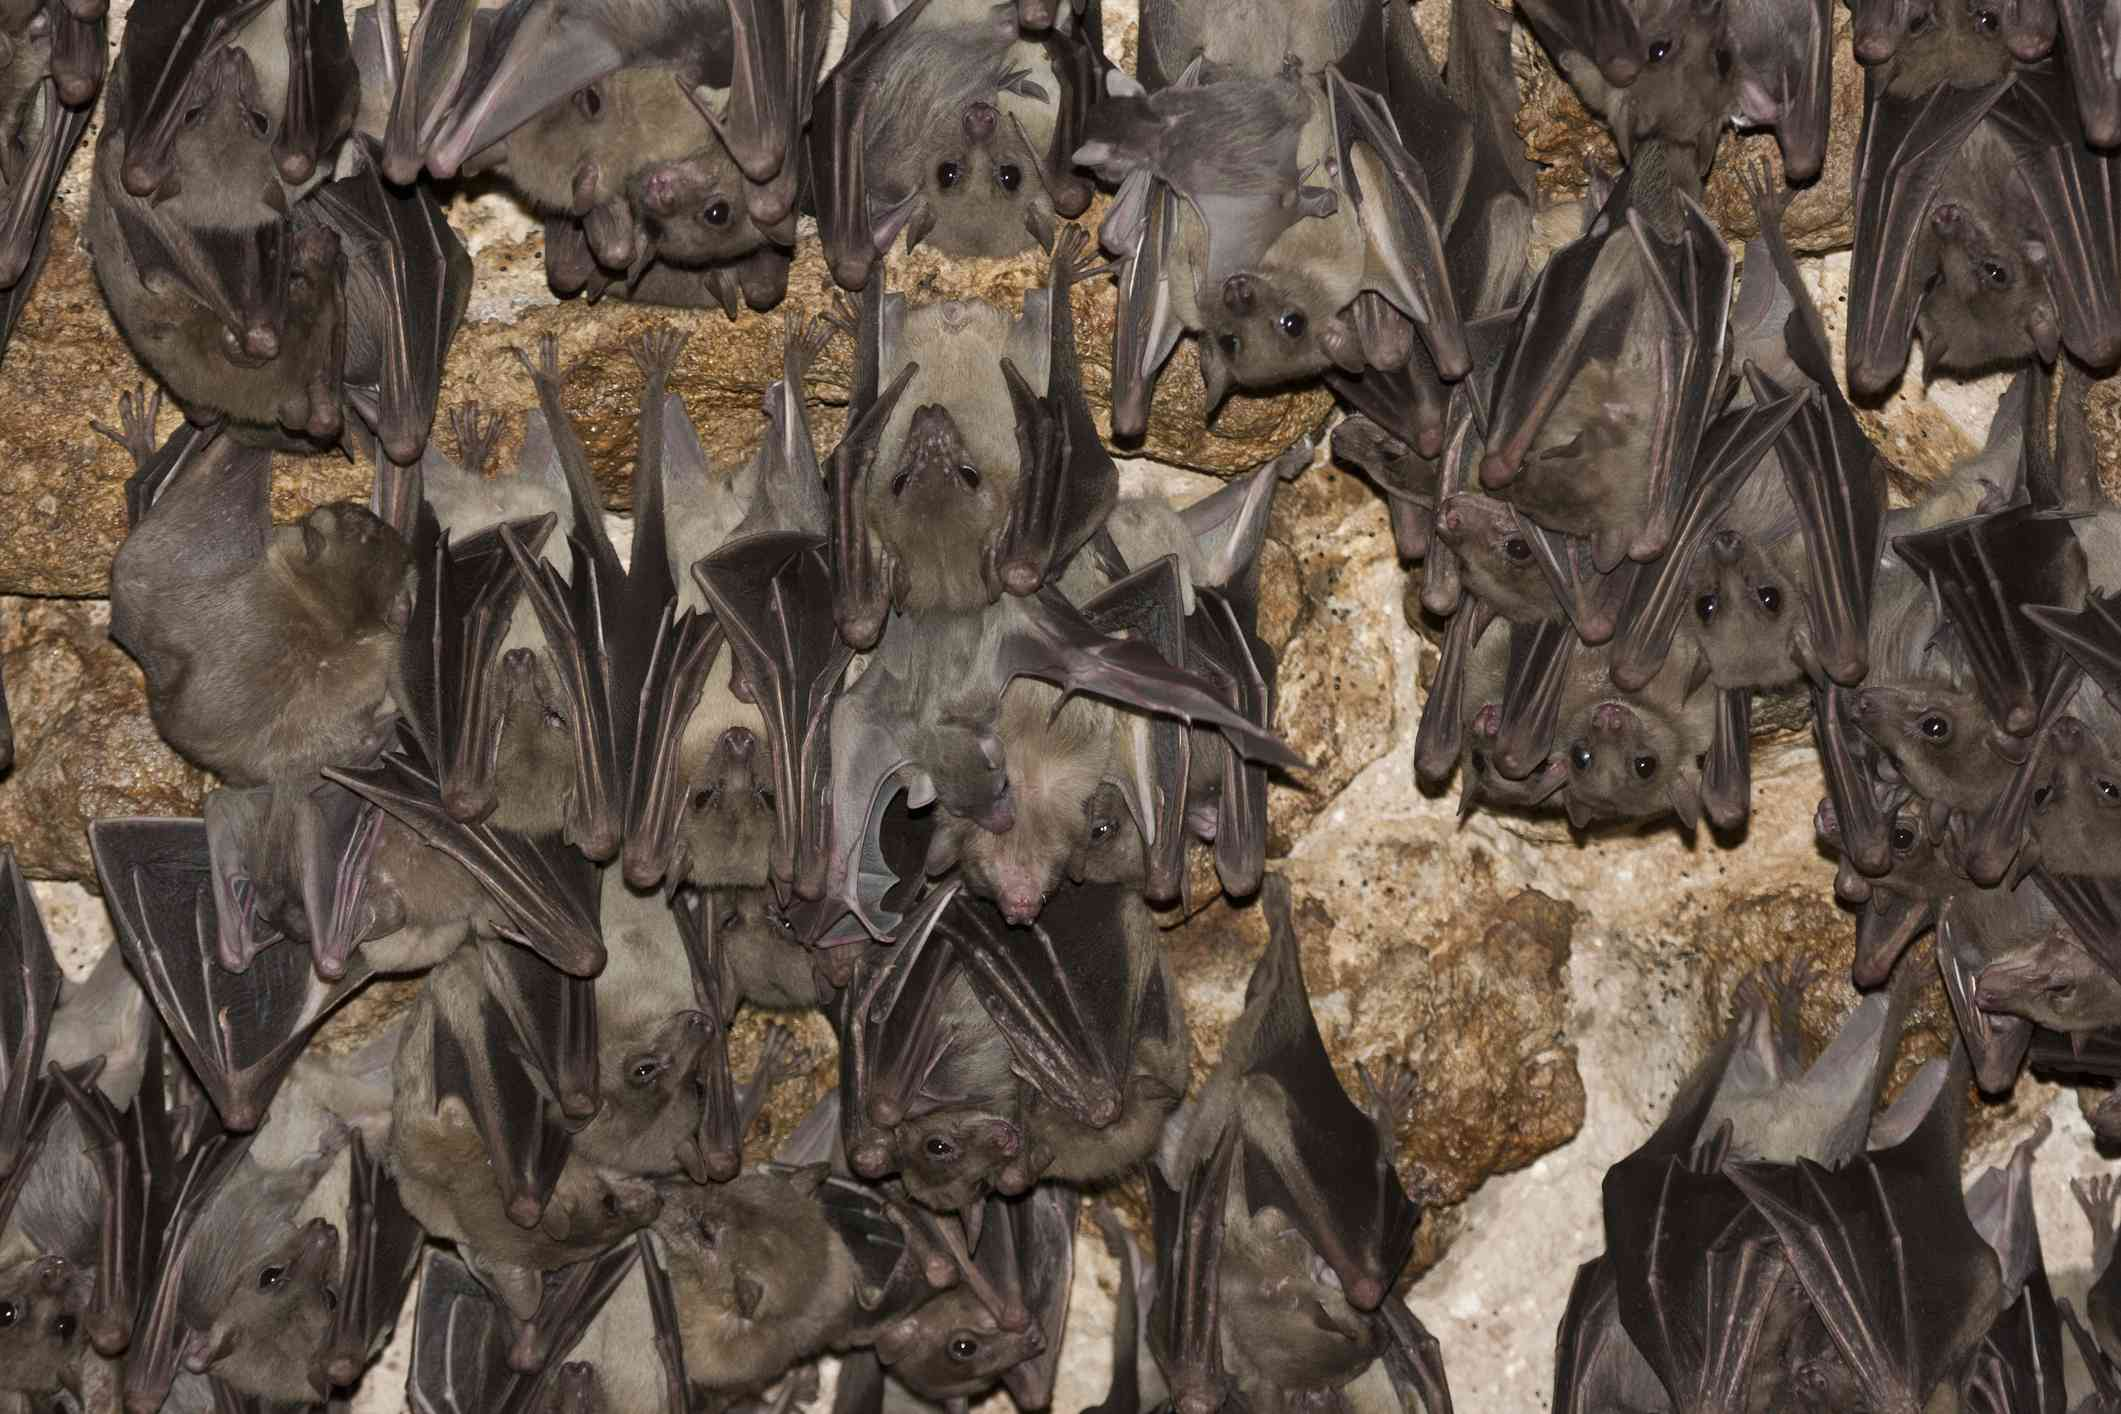 Egyptian rousette bats hanging in a large group at night